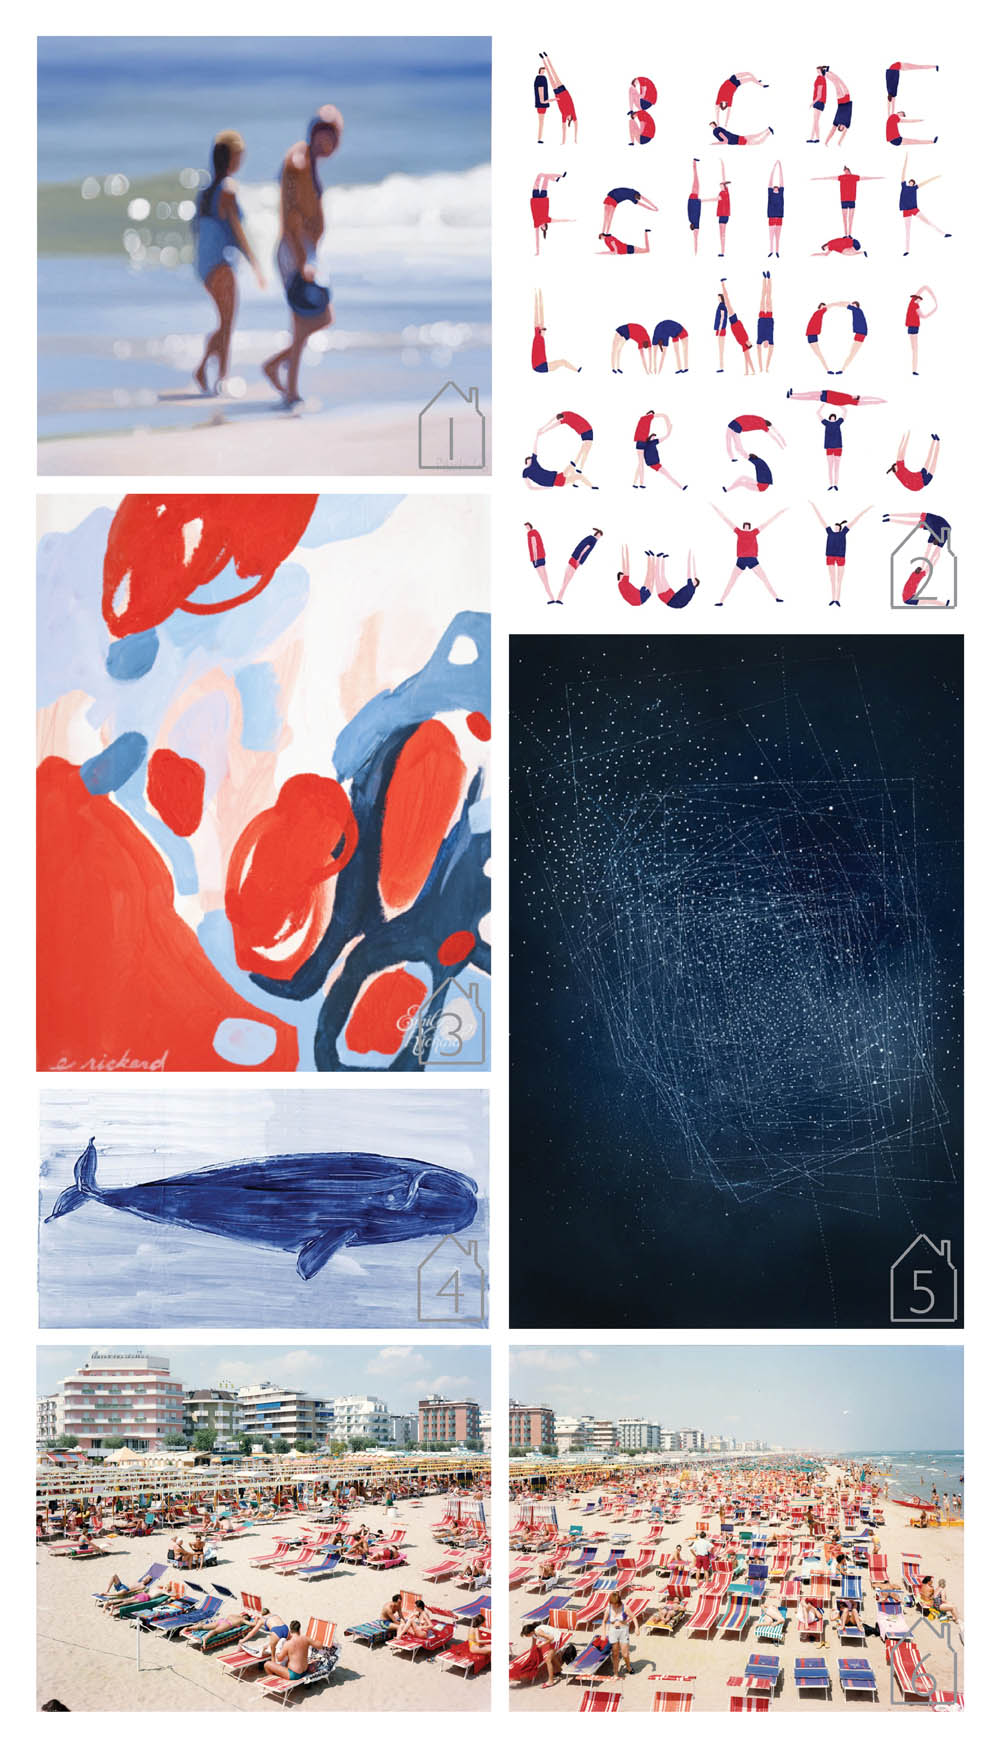 1. Finale, 2008, oil on canvas, Philip Barlow image via Johns Borman  2. Illustrated Alphabet inspired by the London Olympics 2012, Charlotte Trounce  3. Color Study No.5, 2012, acrylic on canvas, Emily Rickard  4. Right, mixed media, Madeline and Robert Longstreet image via One Kings Lane   5. Emma McNally  6. Massimo Vitali